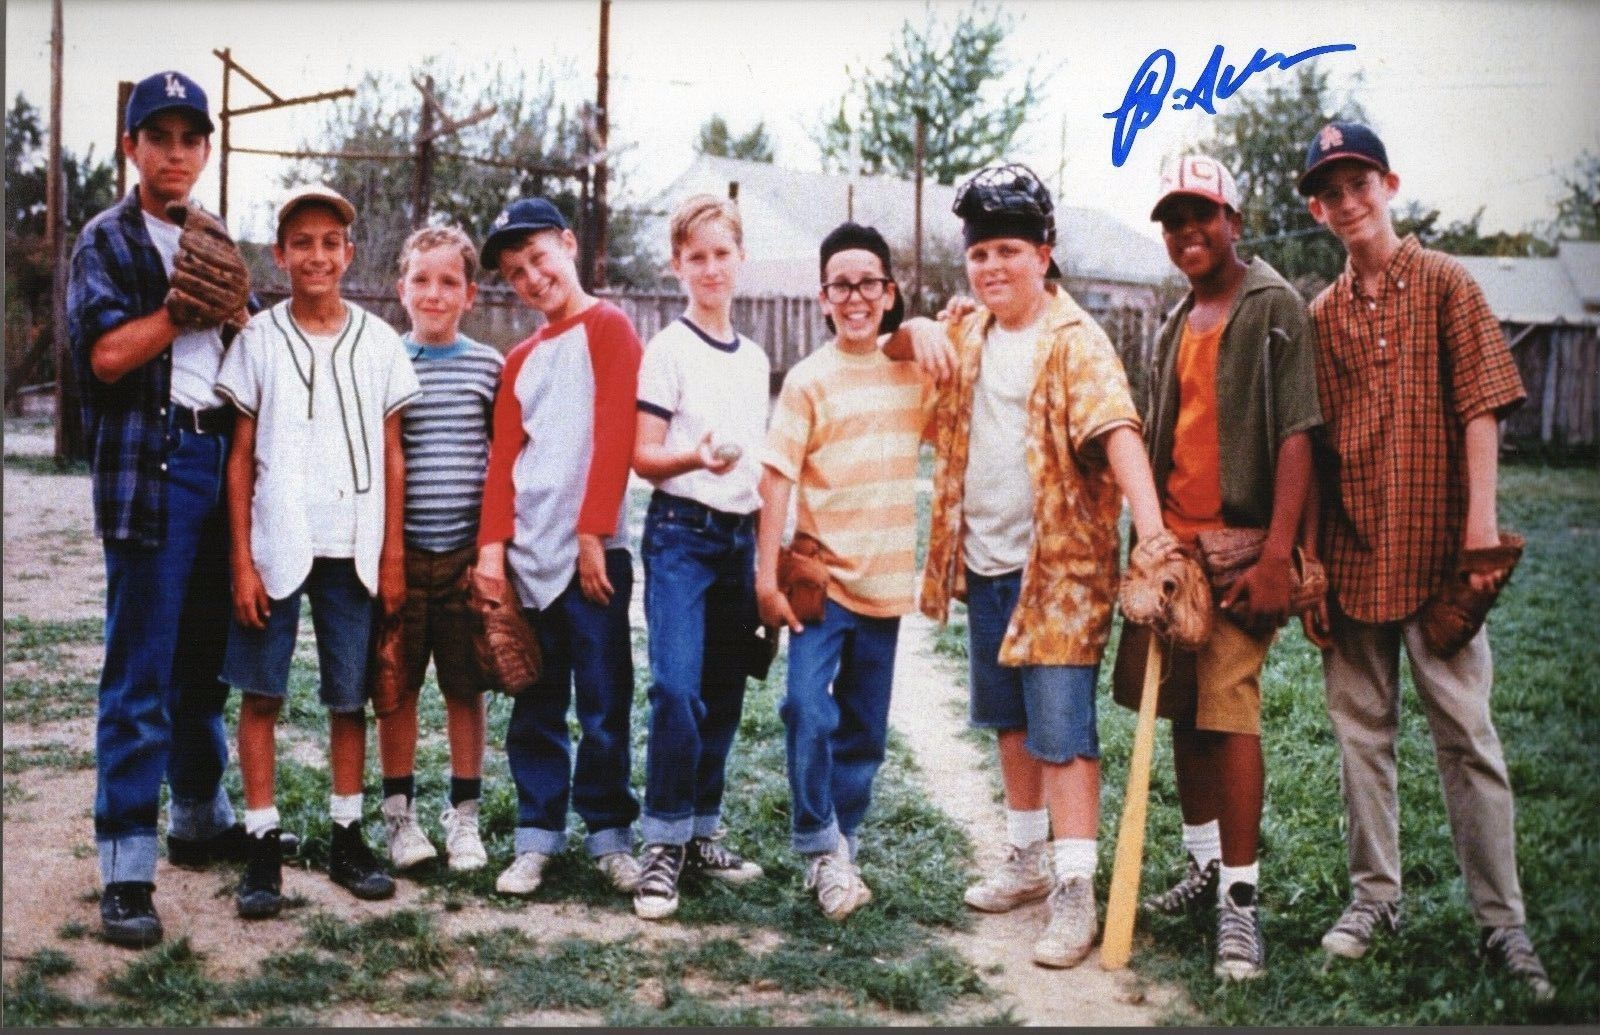 Brandon Adams The Sandlot Autograph 11X17 Photo The Mighty Ducks COA Zobie Z7